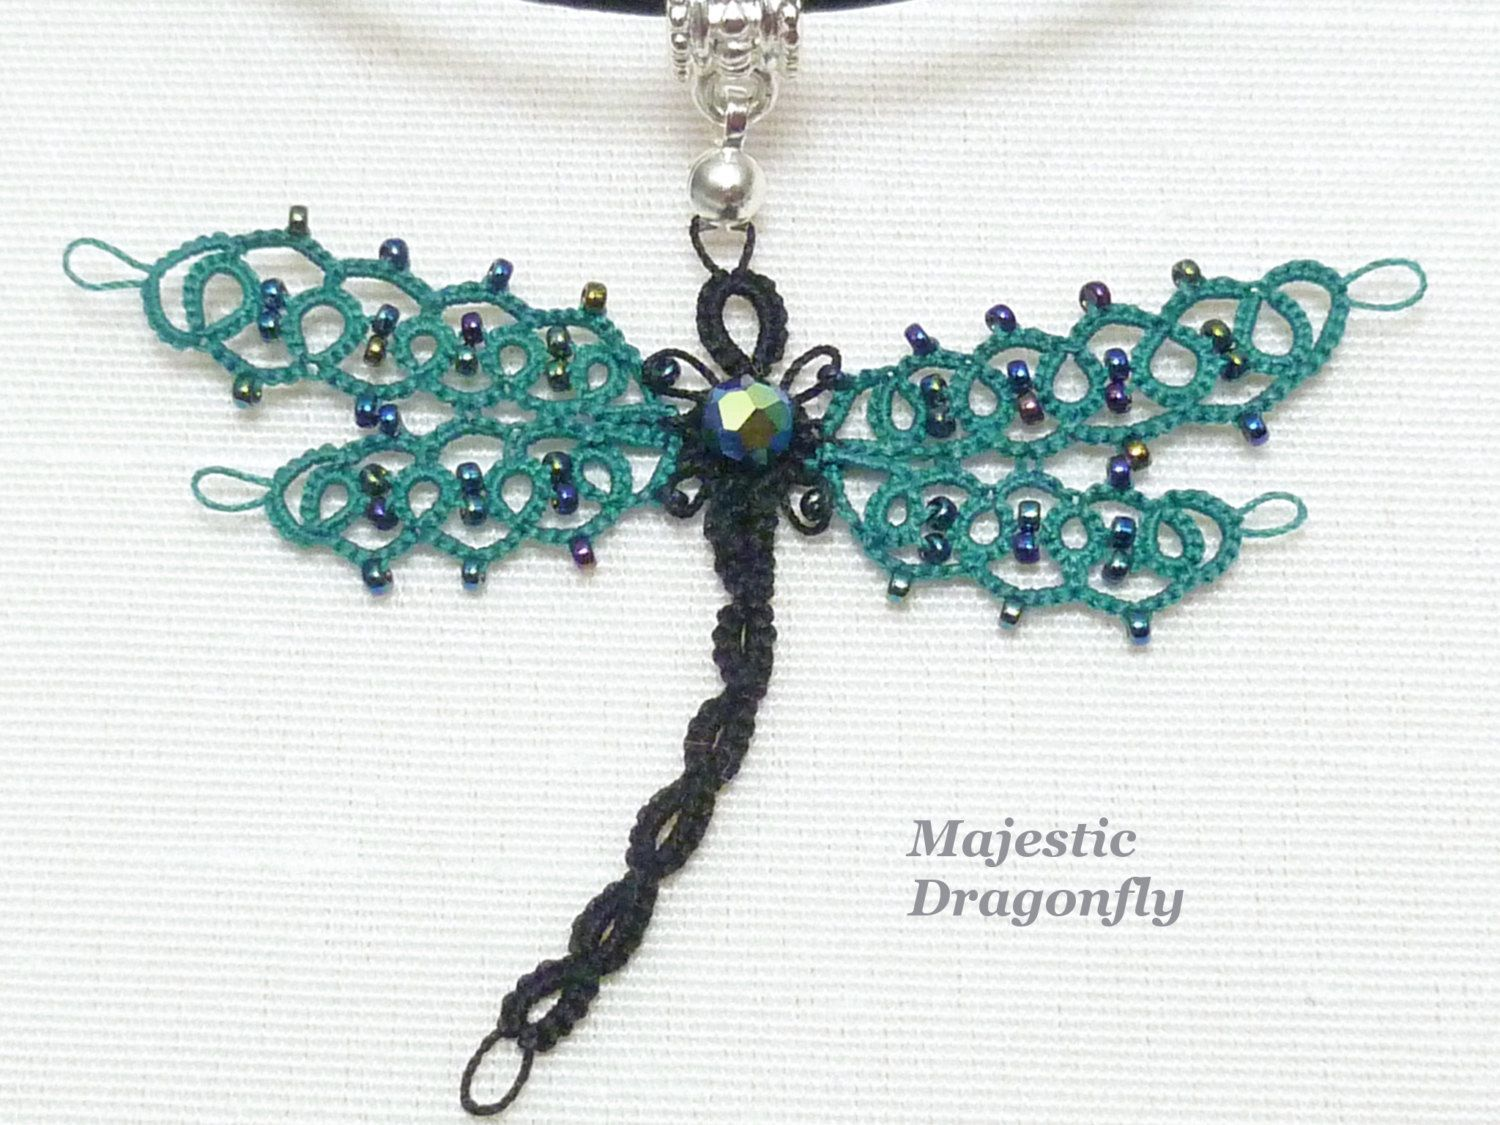 Tatted Lace Dragonfly Pendant -Majestic Dragonfly in blue green with glass bead accents. $31.50, via Etsy.